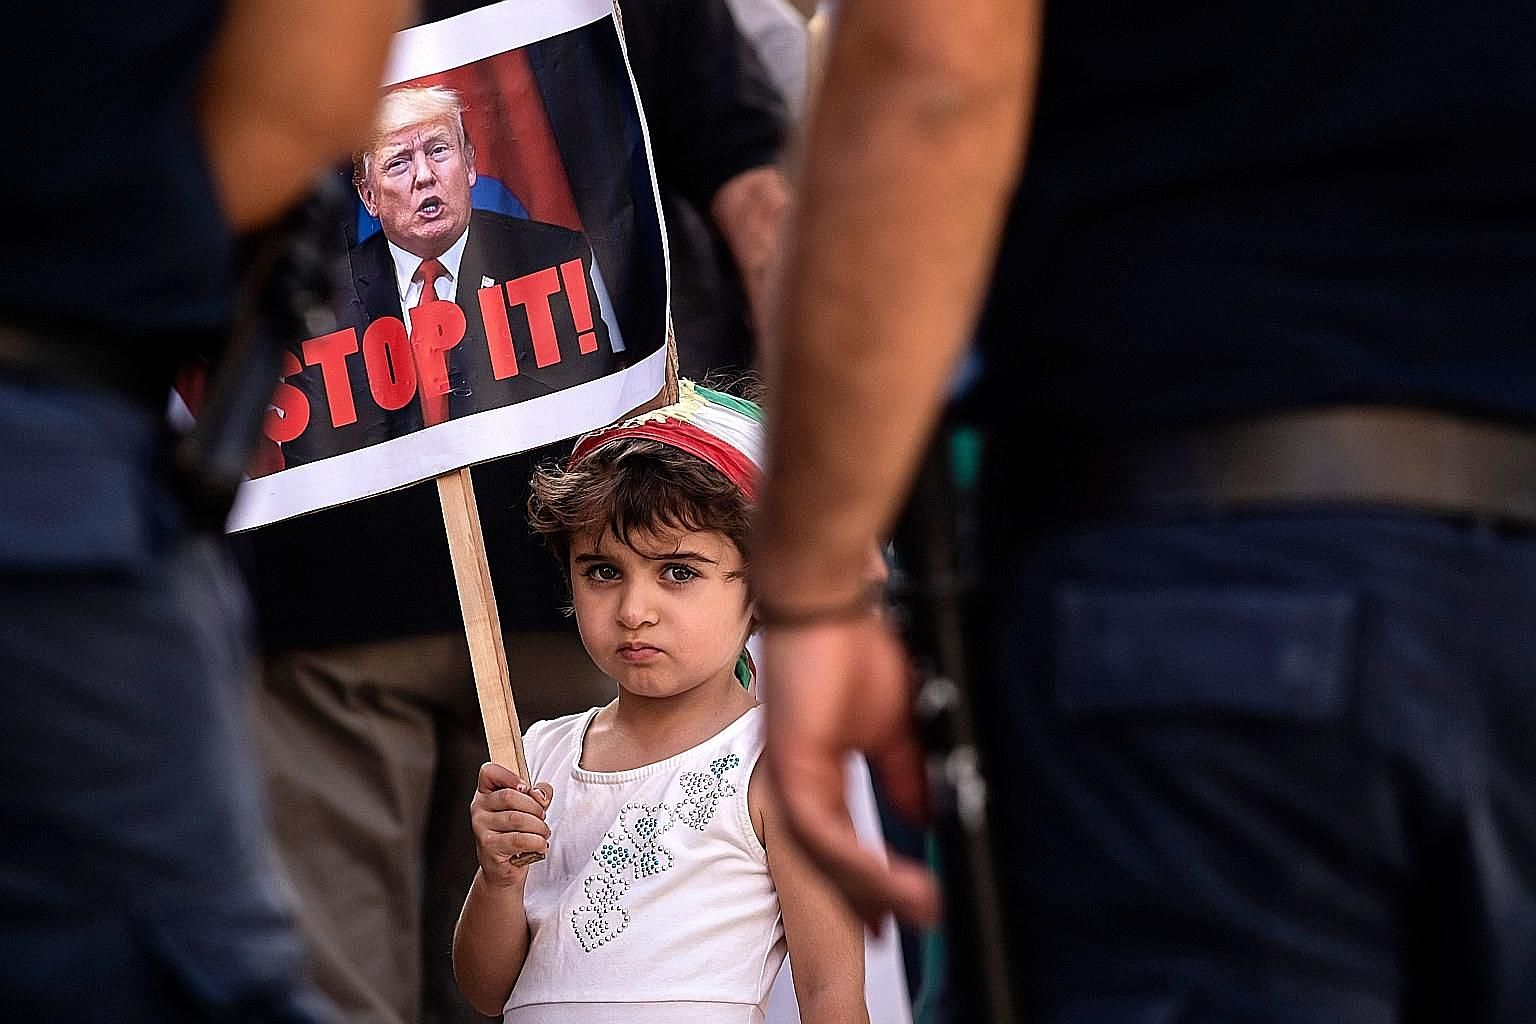 A girl in Cyprus with a placard of US President Donald Trump last month in a protest against the Turkish offensive into Syria. While some feel Mr Trump's departure would set the US and the world on a path back towards some idea of normal, the writer